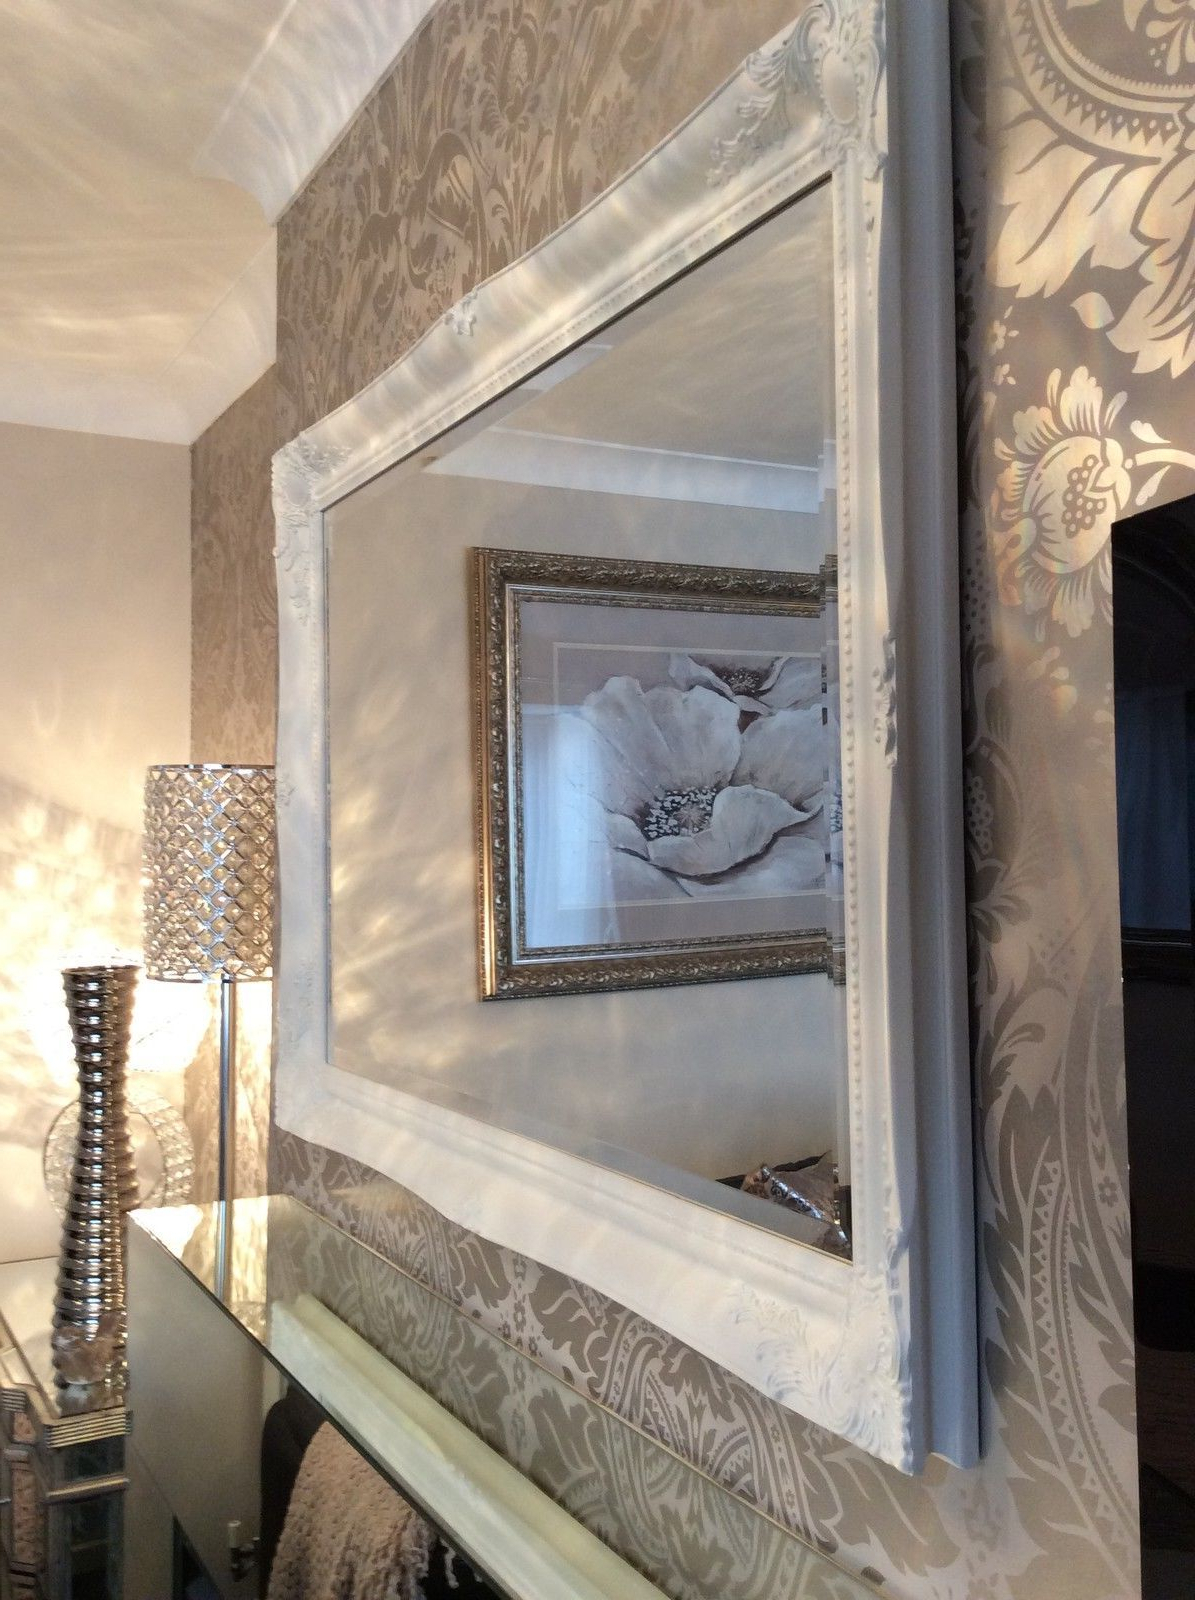 White Shabby Chic Wall Mirrors With Regard To Most Recent Matt White Extra Large Shabby Chic Wall Mirror – Large Range Of Sizes (View 2 of 20)